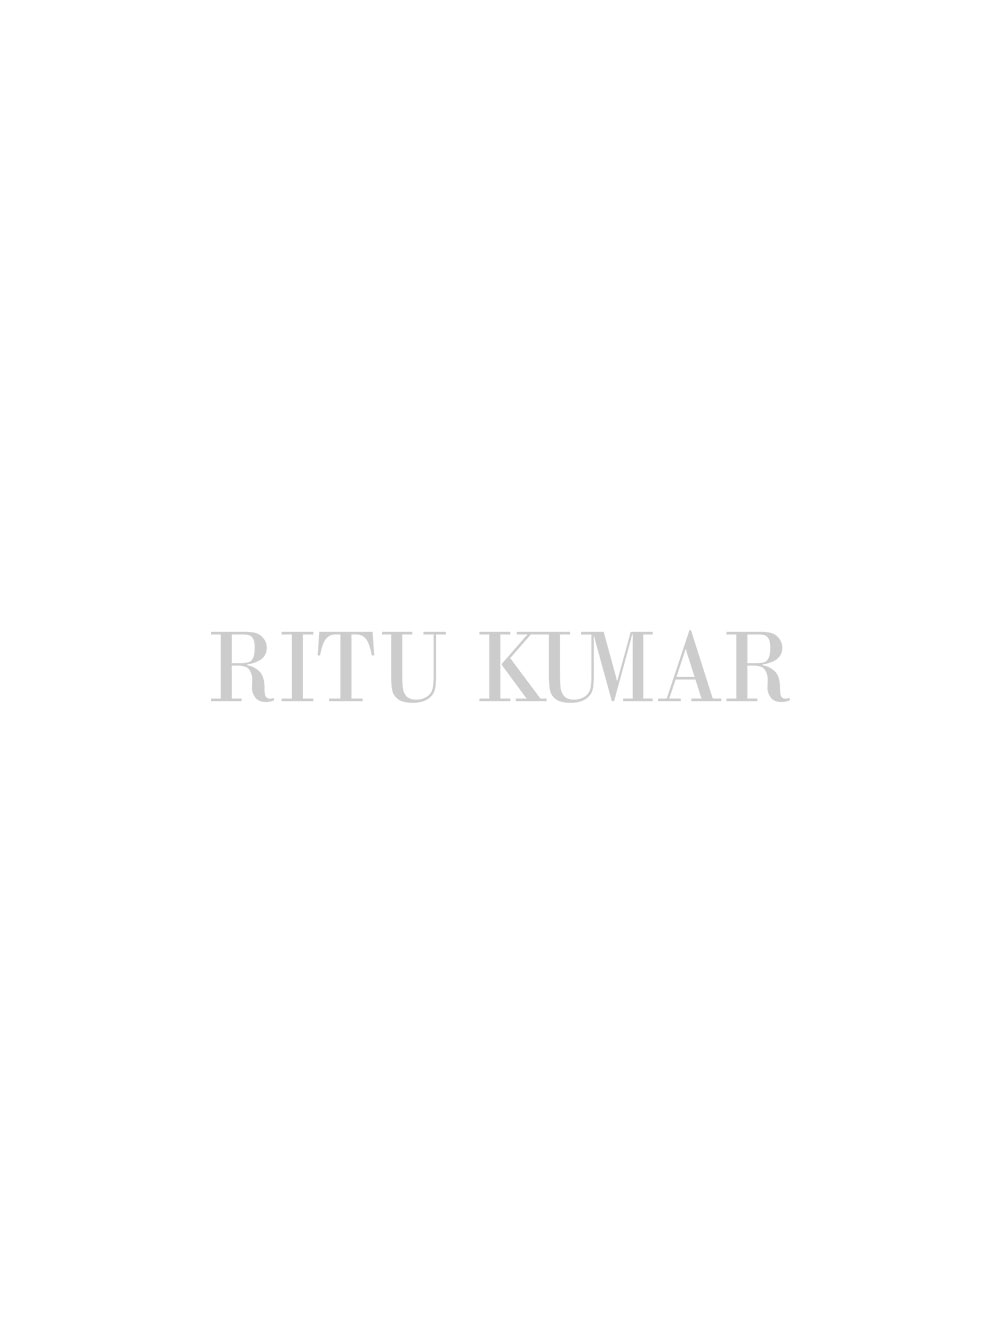 Black & White Awadh Charger Plate